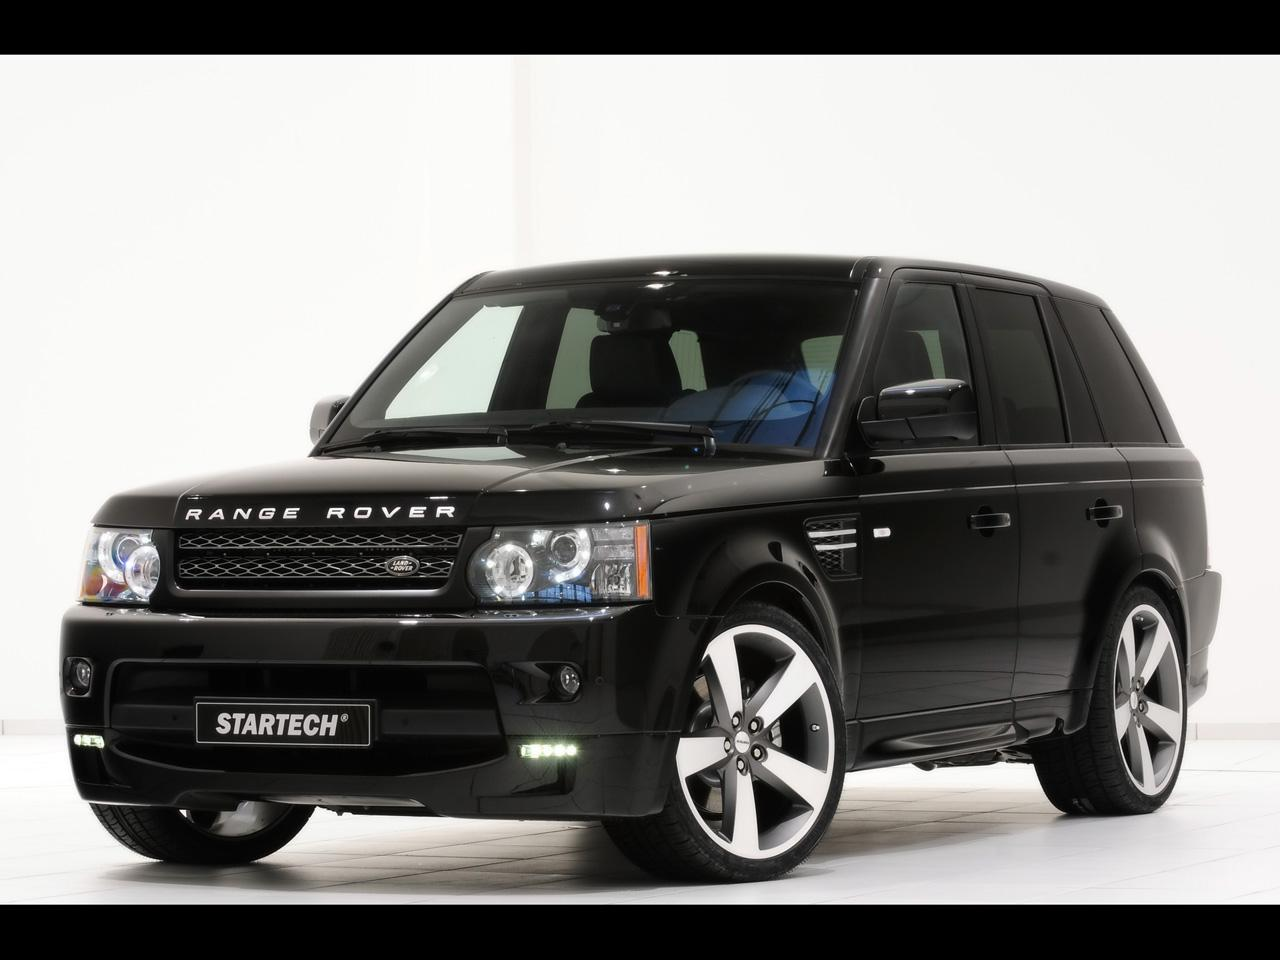 2010 Startech Land Rover Range Rover Wallpapers By Cars